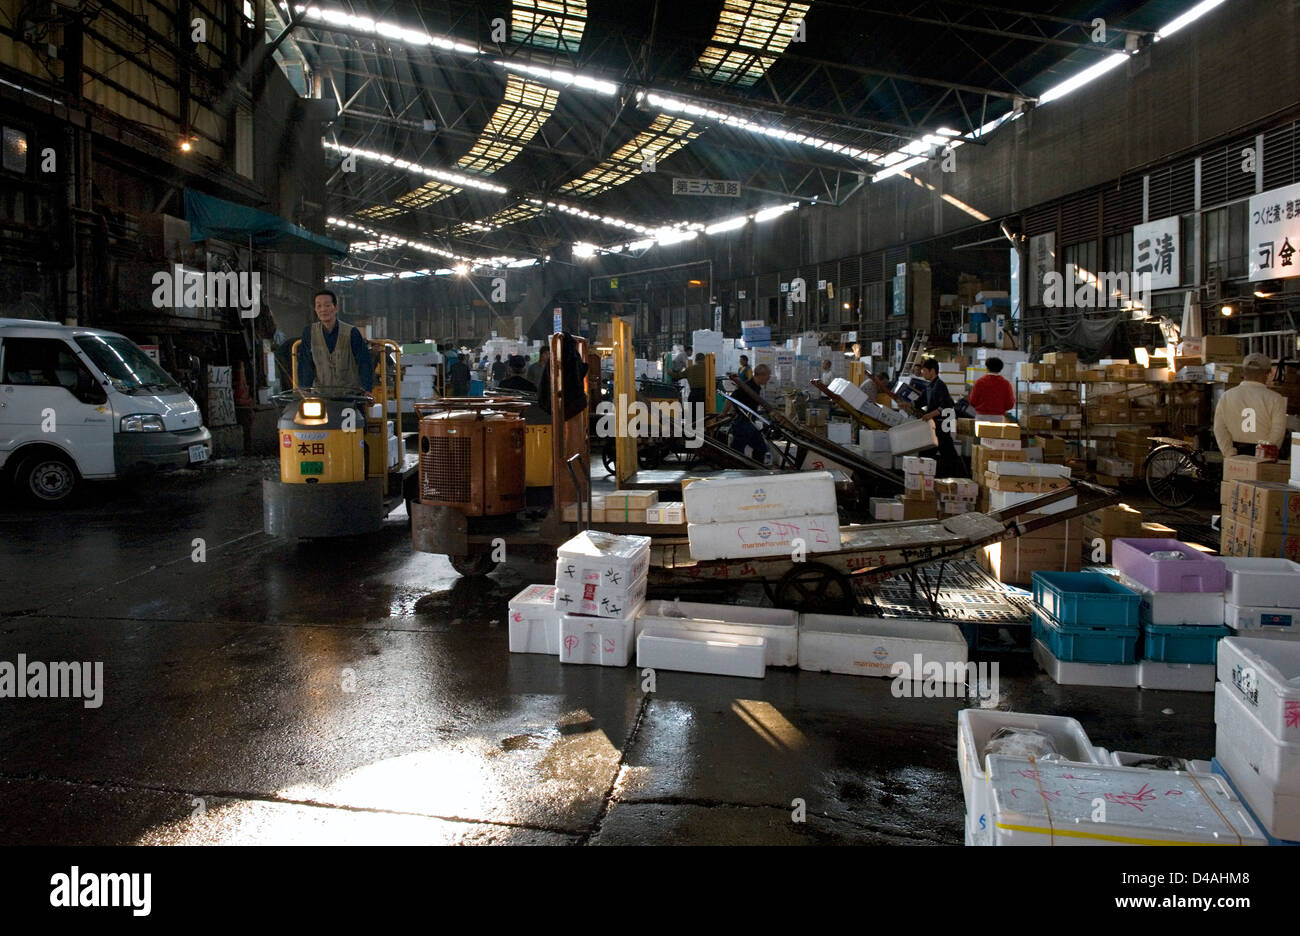 Sunlight filters in through skylights in the distribution and packaging section of Tsukiji Wholesale Fish Market - Stock Image